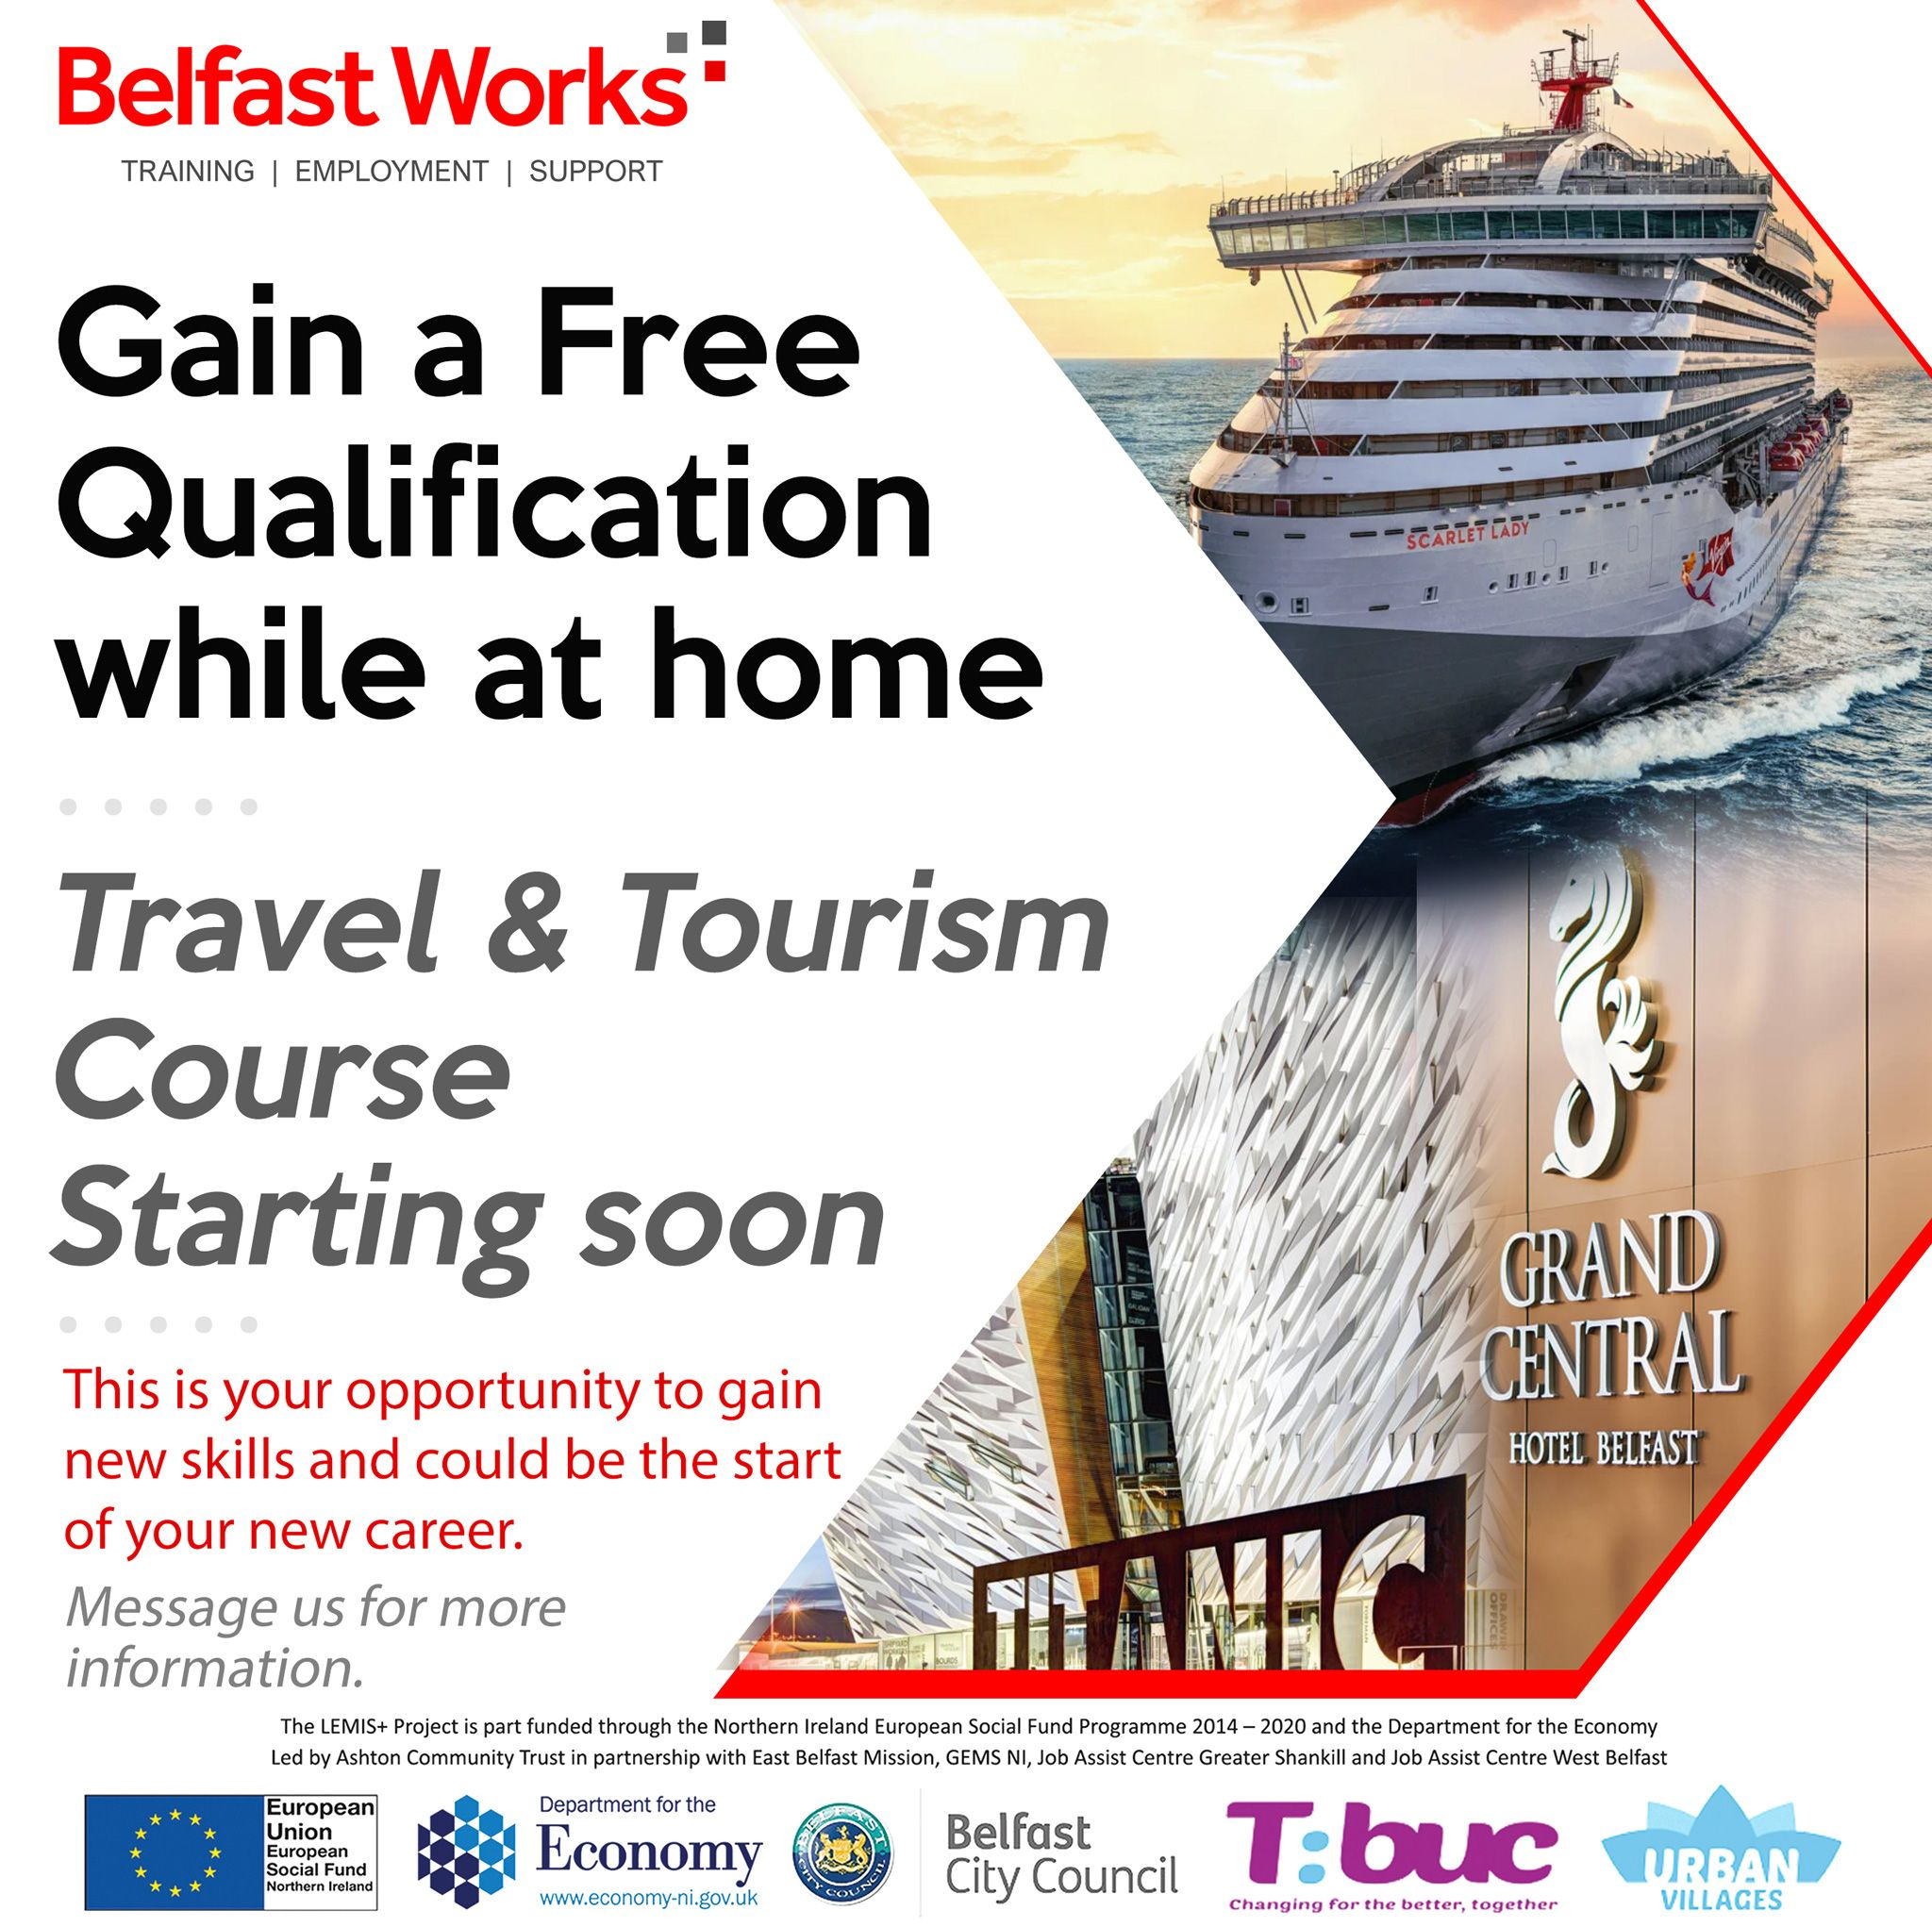 Travel & Tourism Course in 2020 Travel and tourism